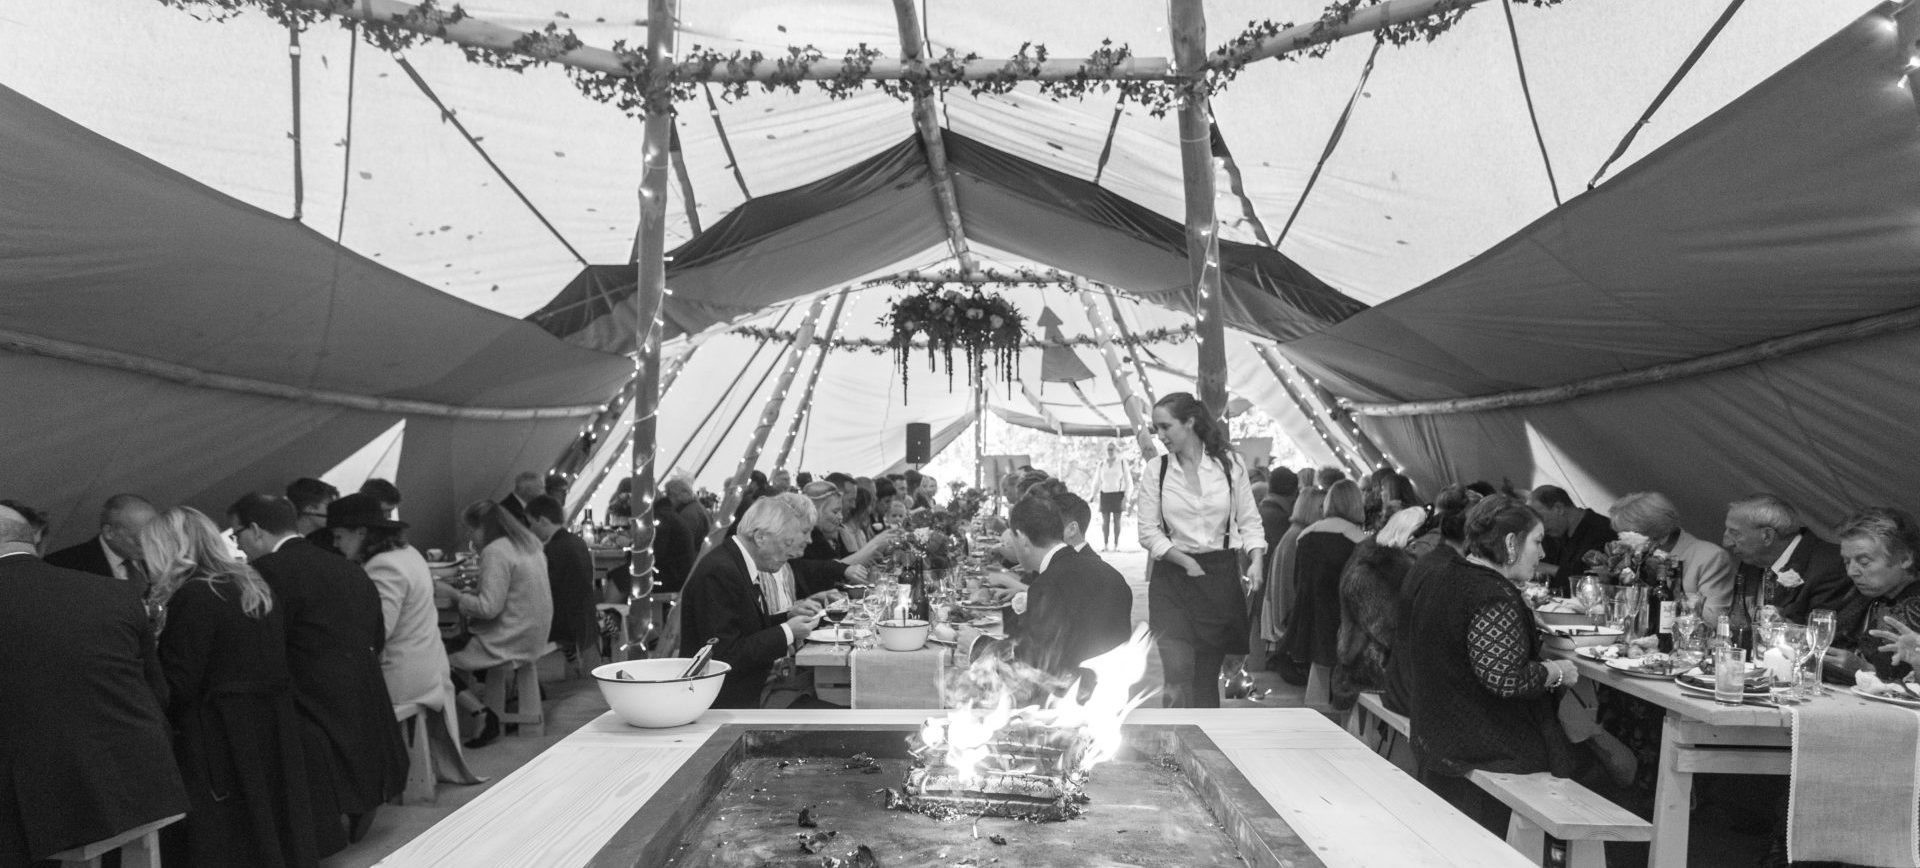 Cotswold Tipi Open Day for Weddings and Events 2019